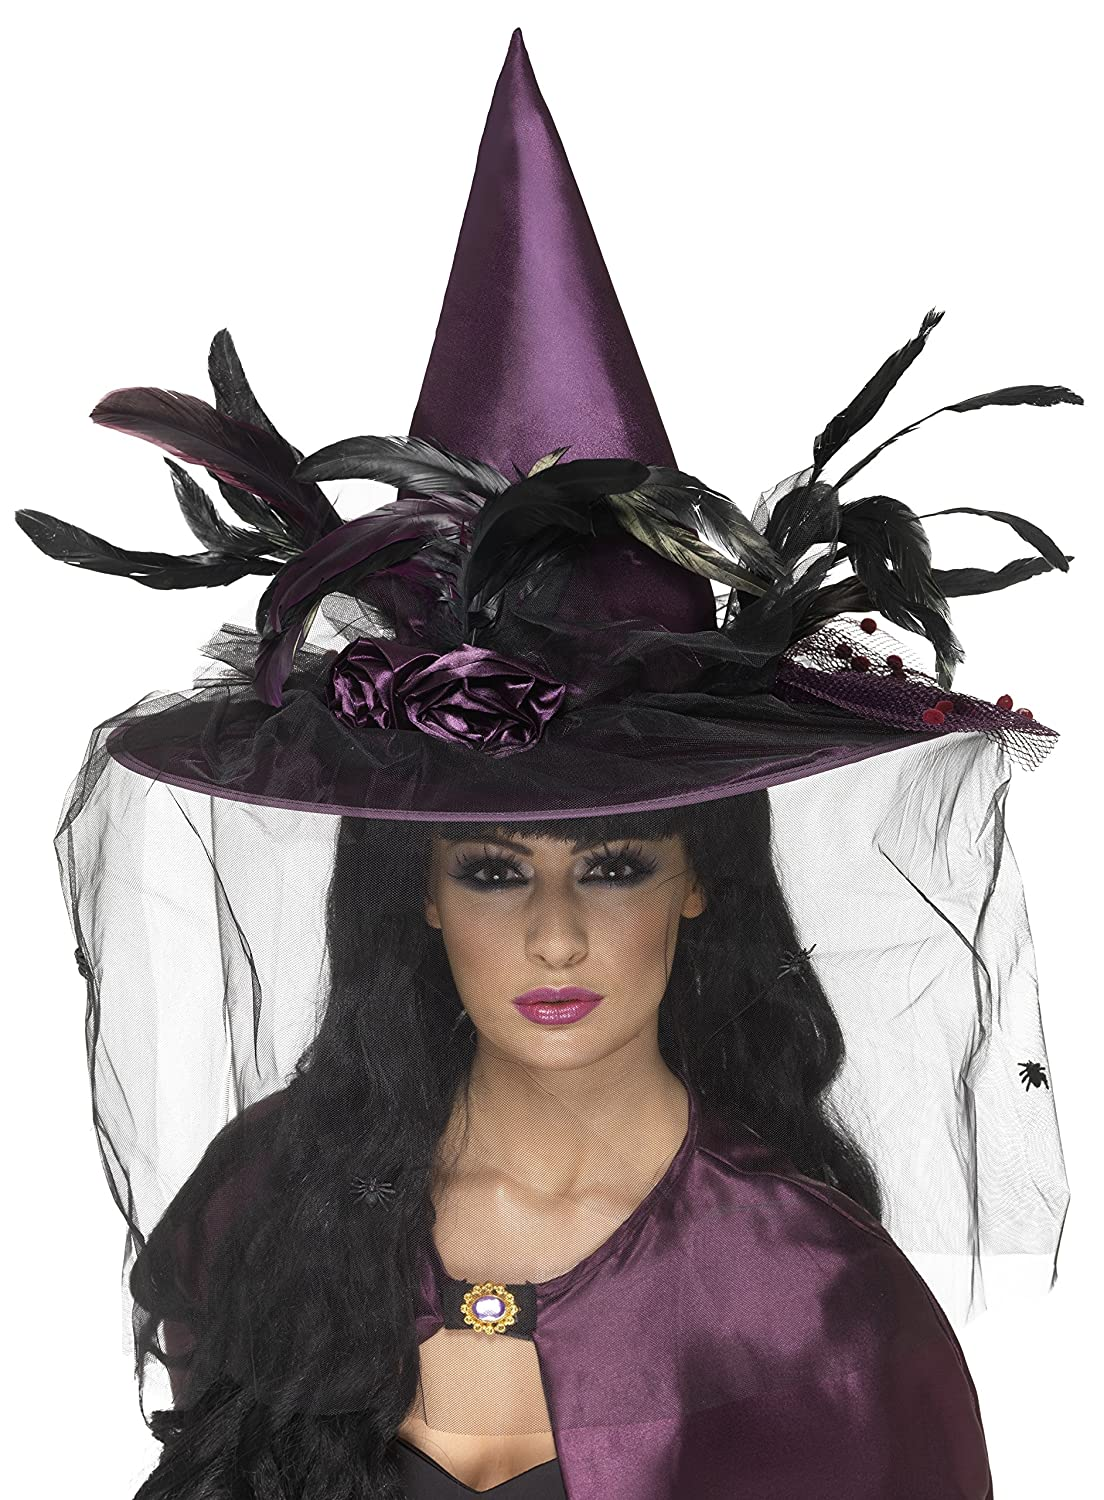 Amazon.com: Smiffy's Women's Witch Hat with Feathers and Netting ...